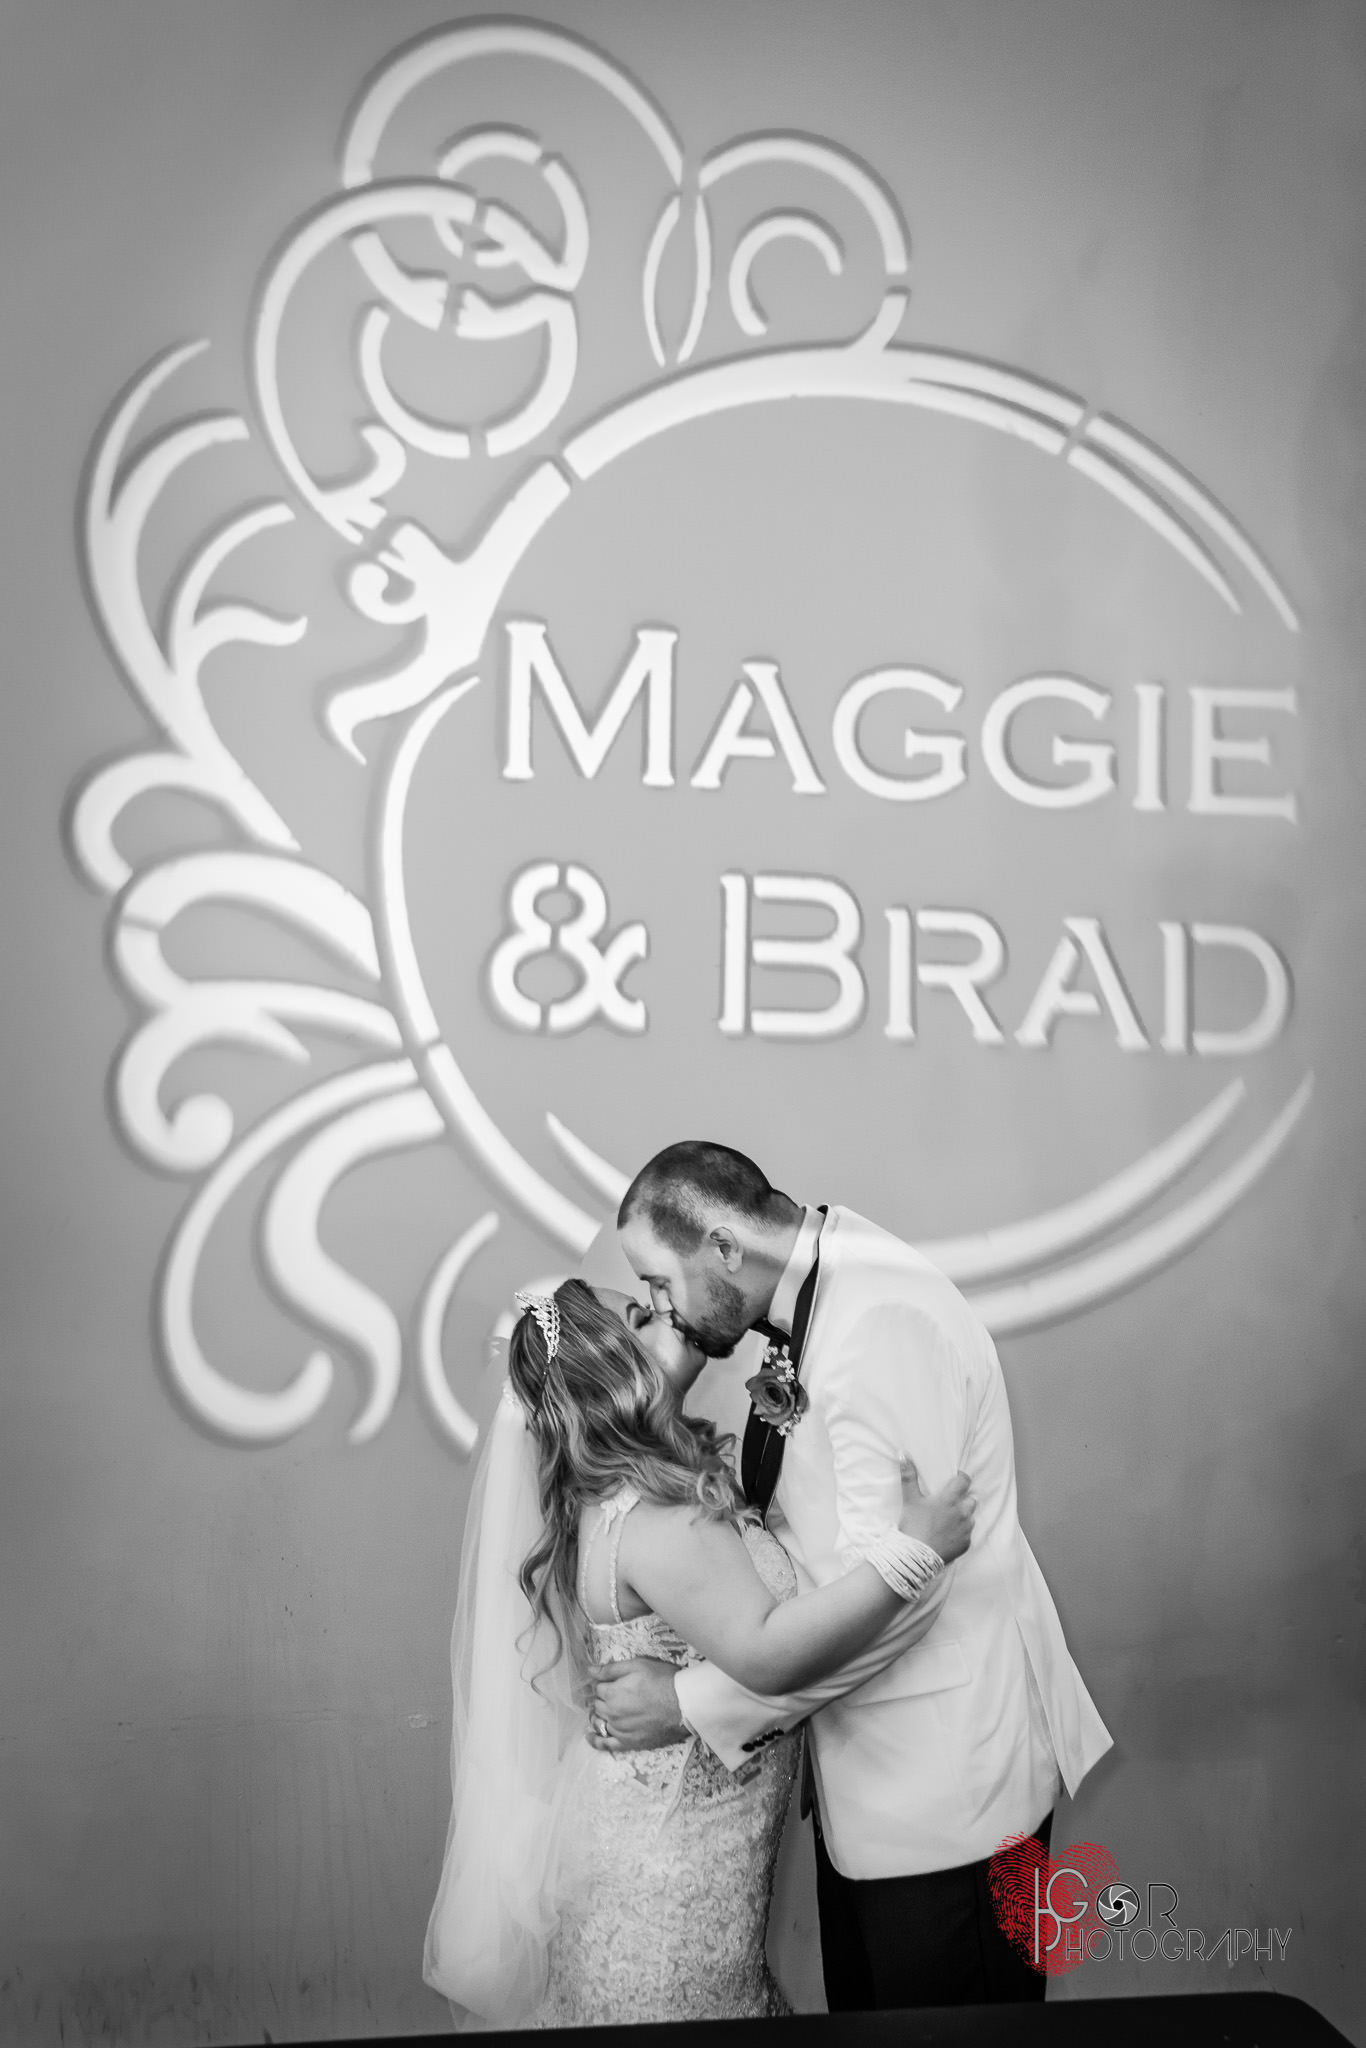 maggie-brad-wedding-top-62.jpg